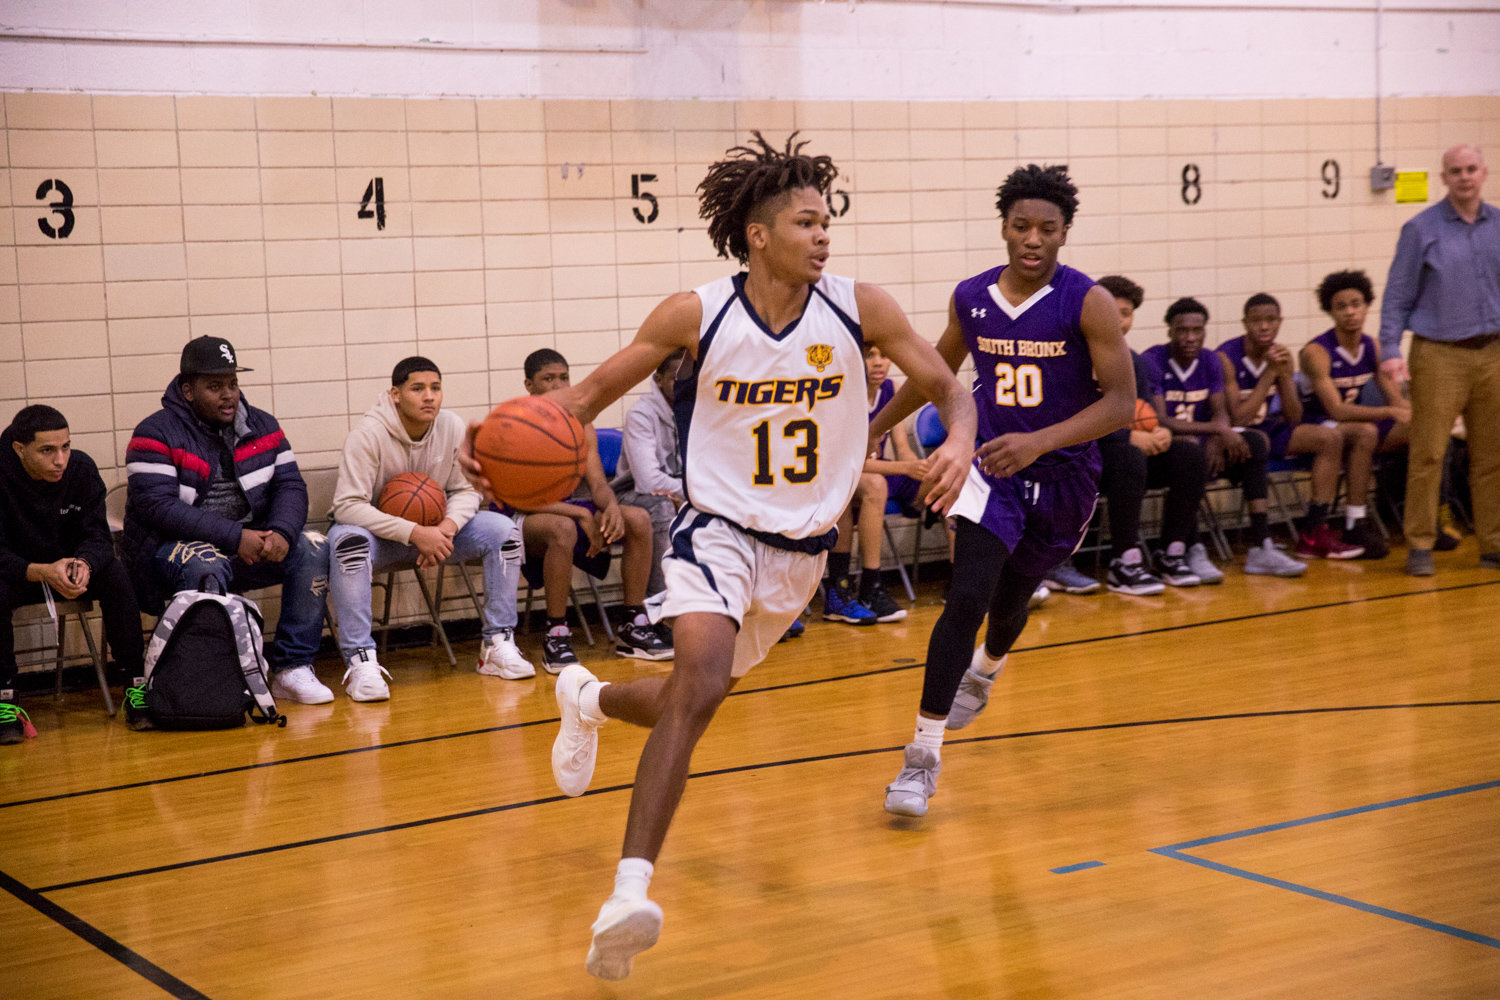 Riverdale/Kingsbridge Academy senior Kai Parris has logged seven double-doubles in nine games this season for the Tigers, with his best outing coming in a 49-point, 21-rebound explosion against Tuitt.